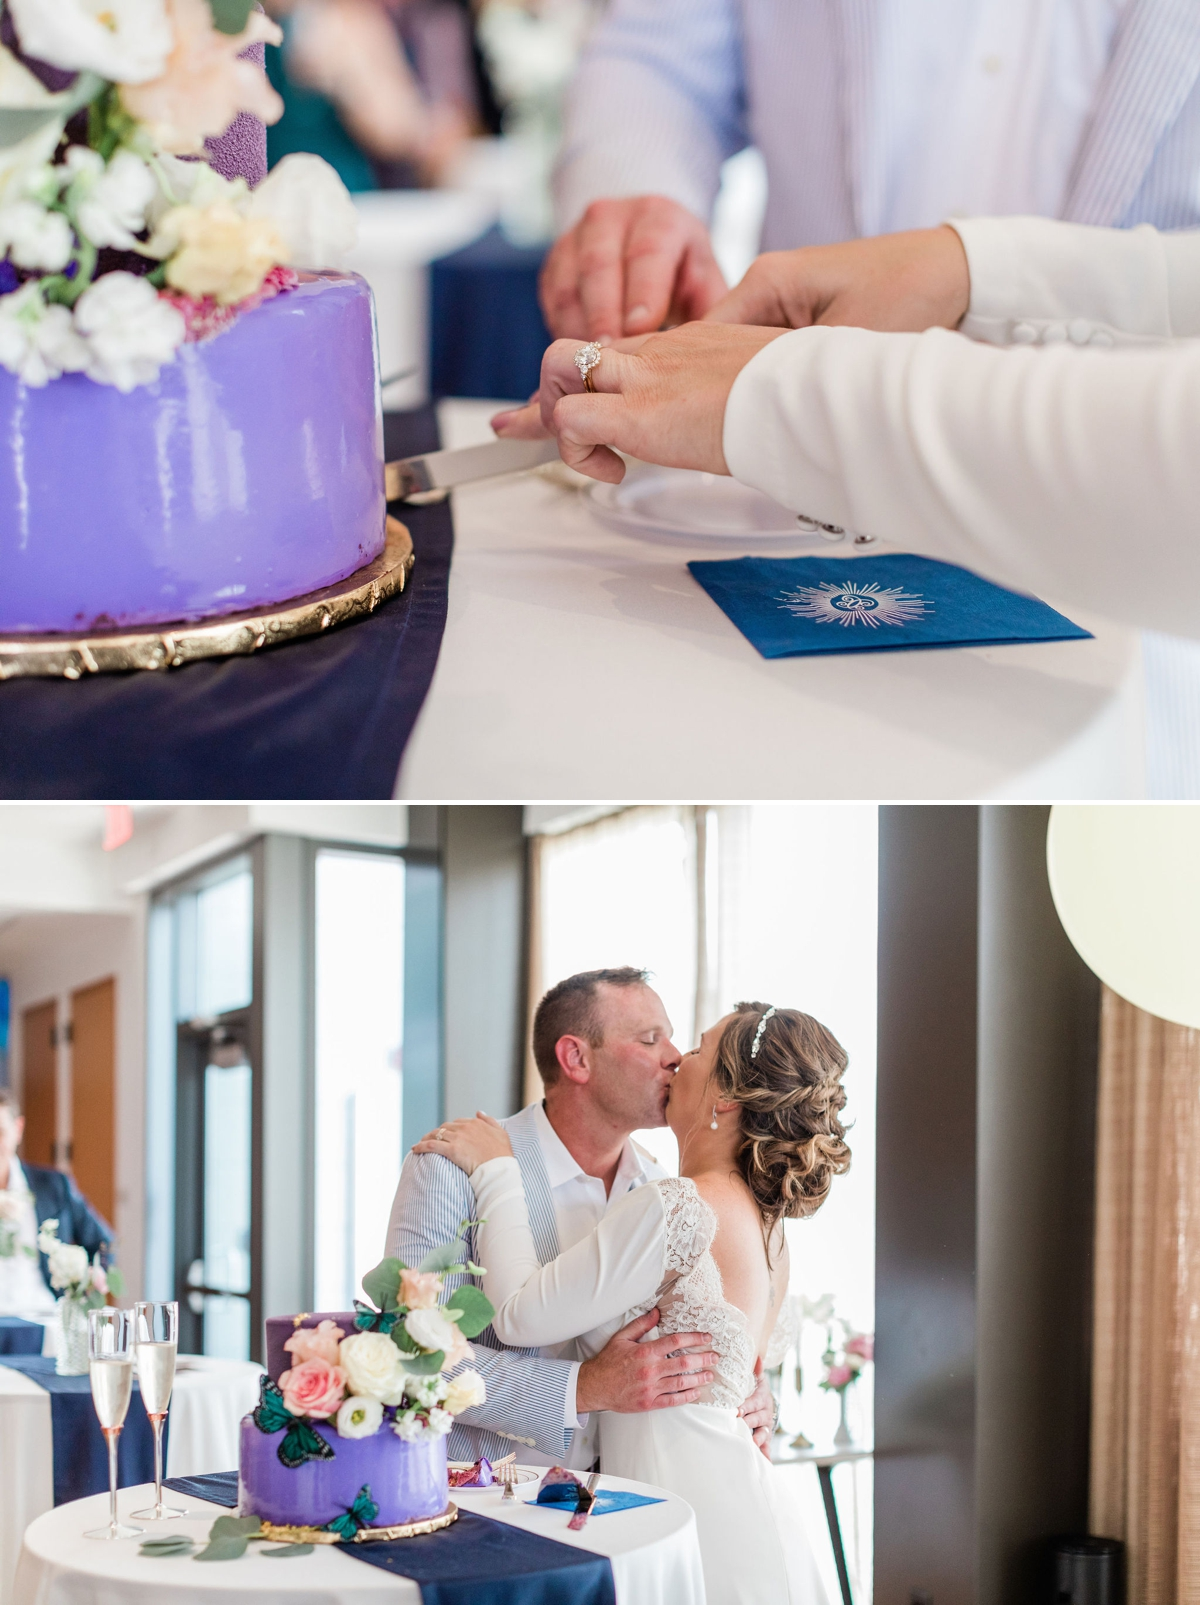 Intimate rooftop wedding ceremony in Washington DC by Apt. B Photography